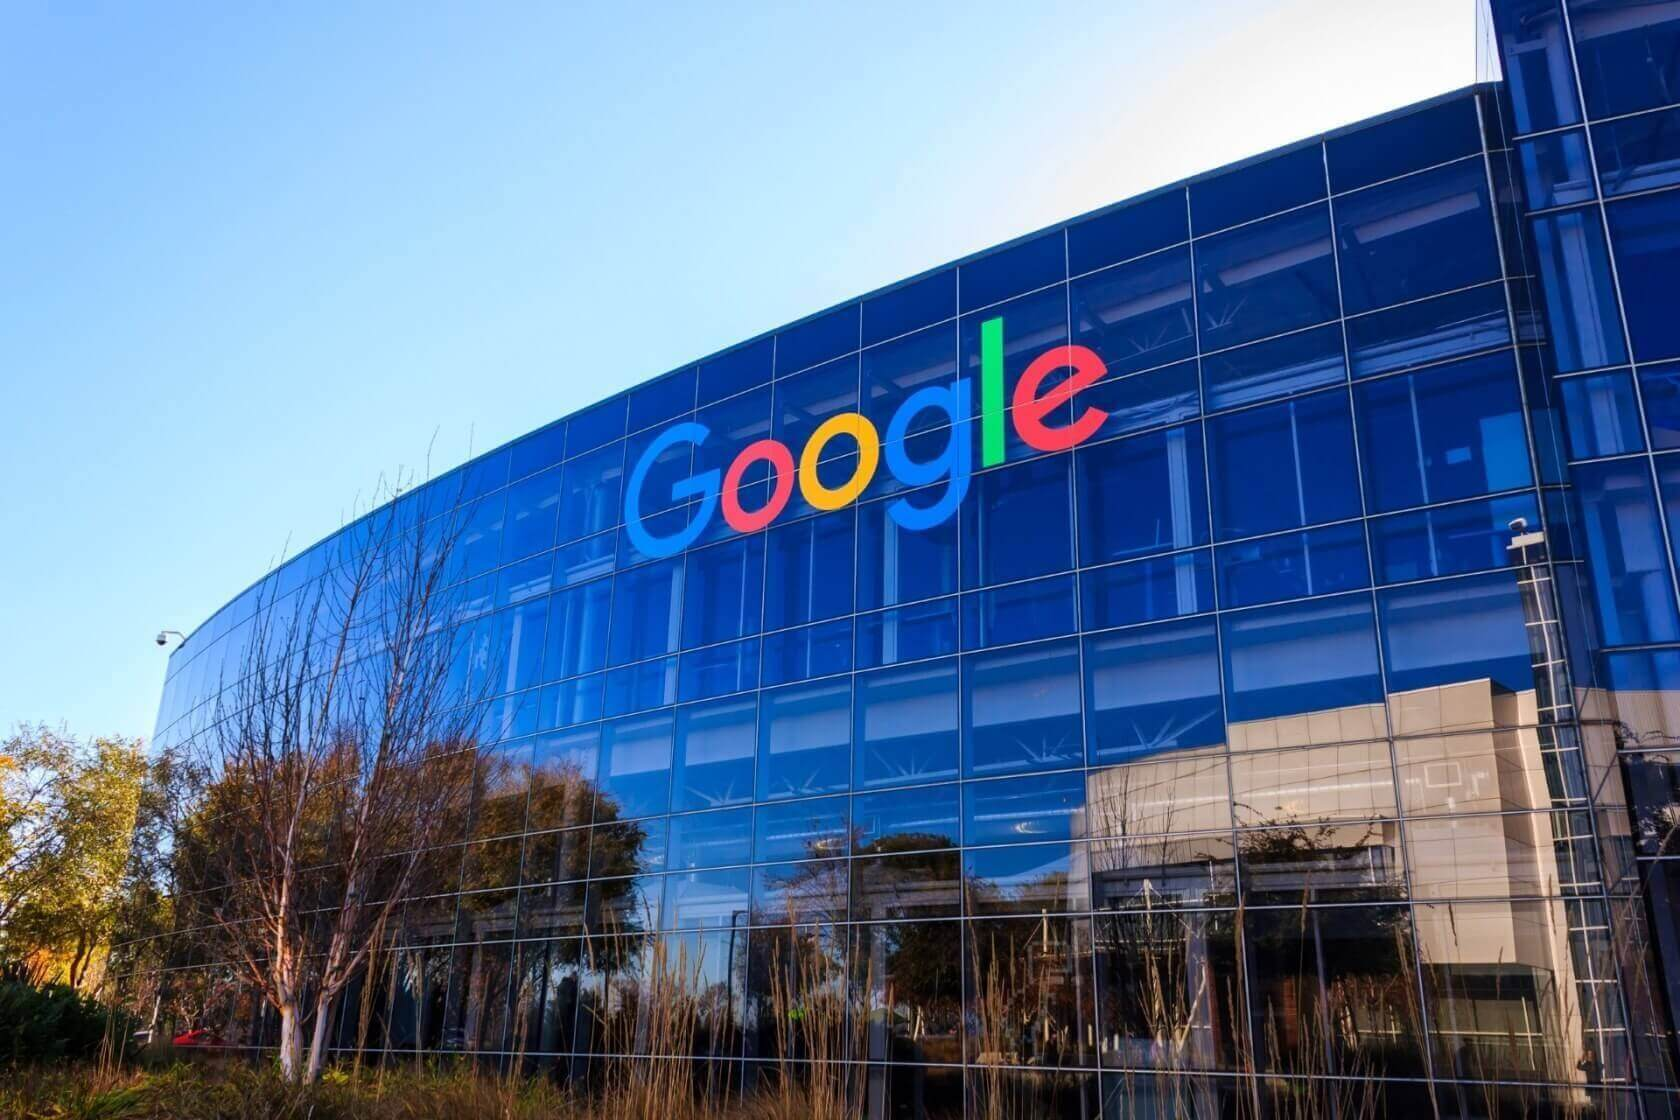 The DOJ may team up with state attorneys general to investigate Google over antitrust concerns